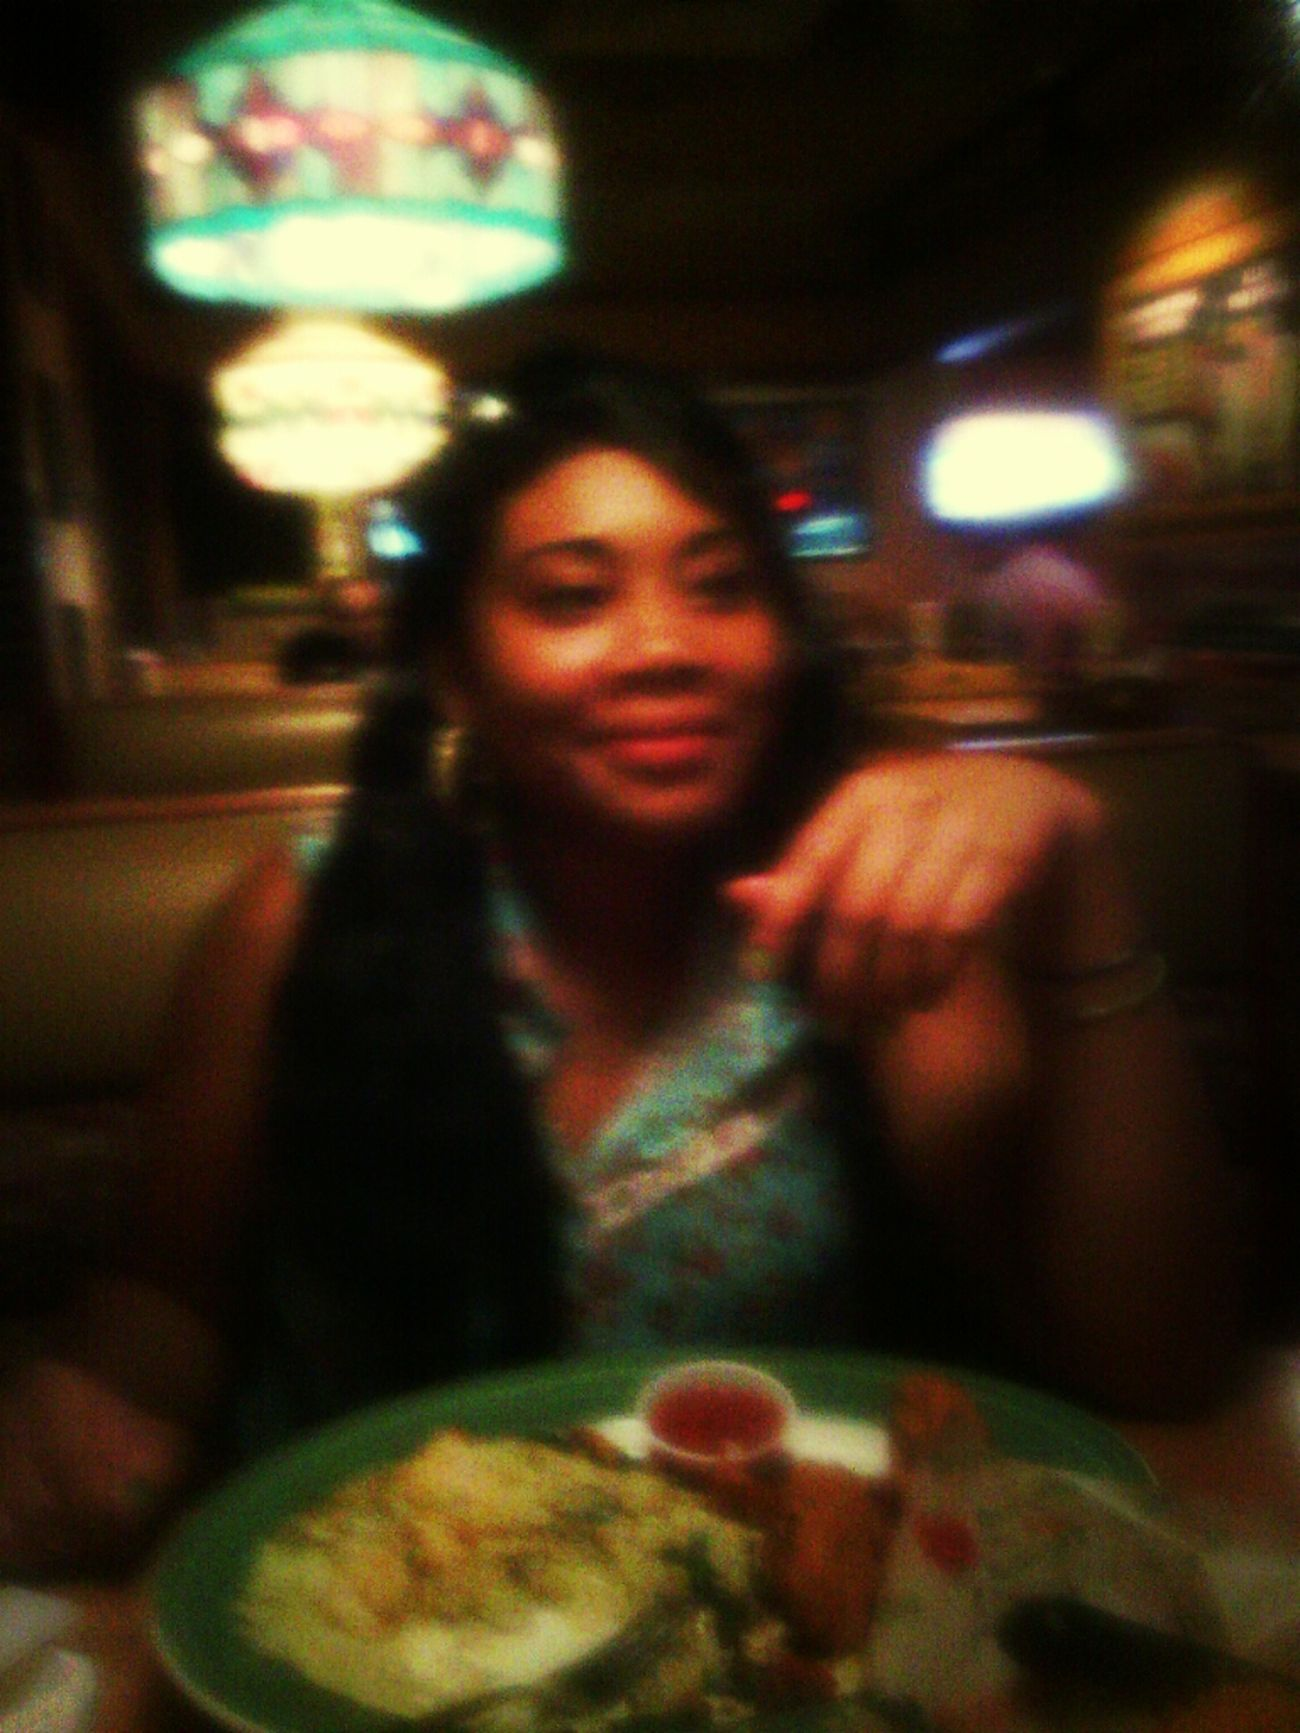 At Applebees